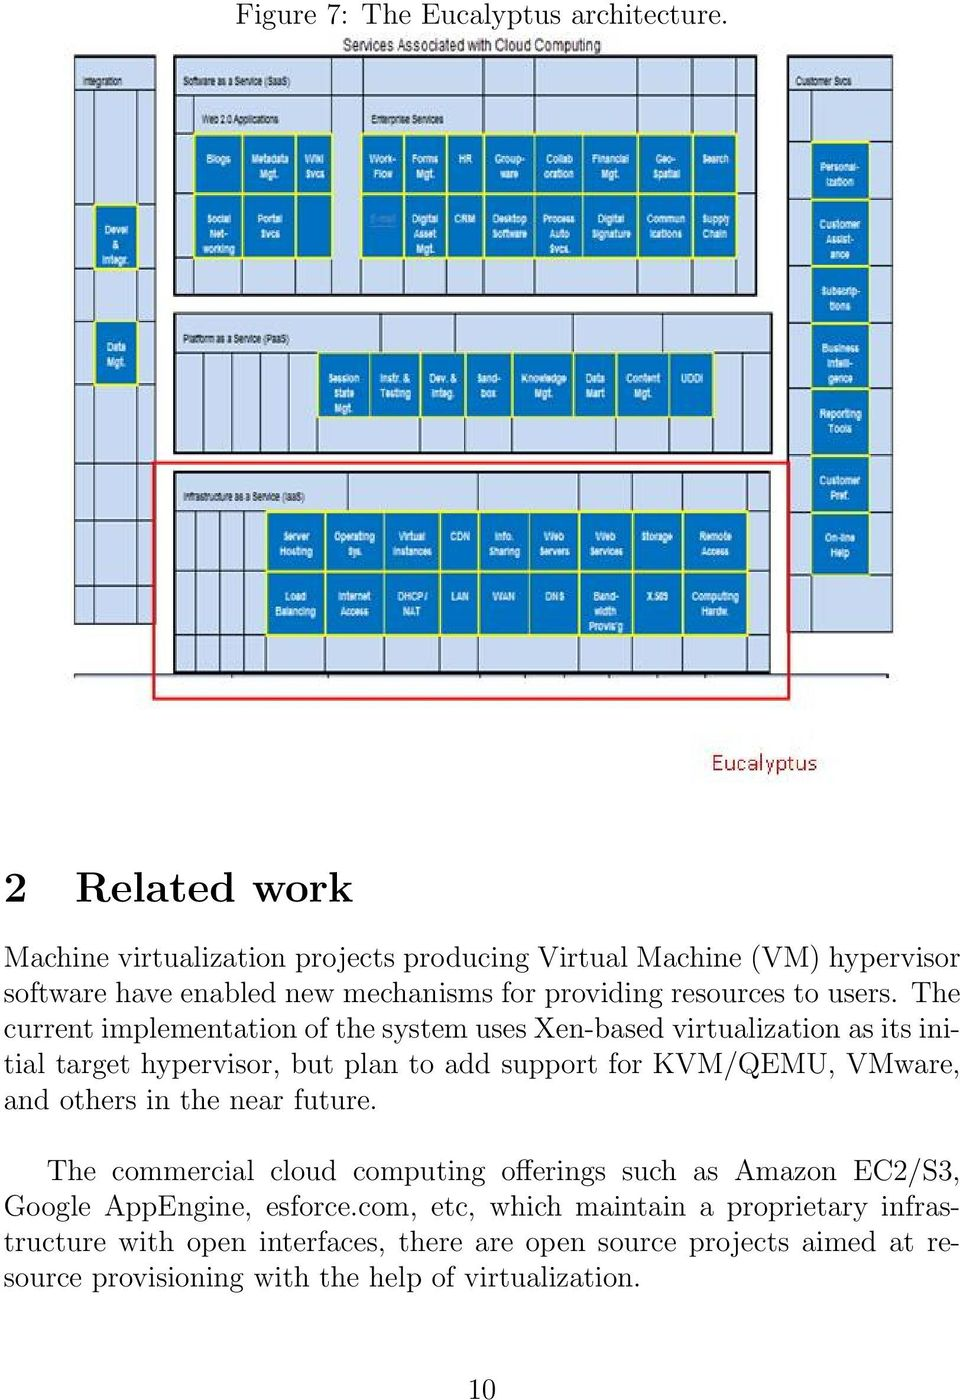 The current implementation of the system uses Xen-based virtualization as its initial target hypervisor, but plan to add support for KVM/QEMU, VMware, and